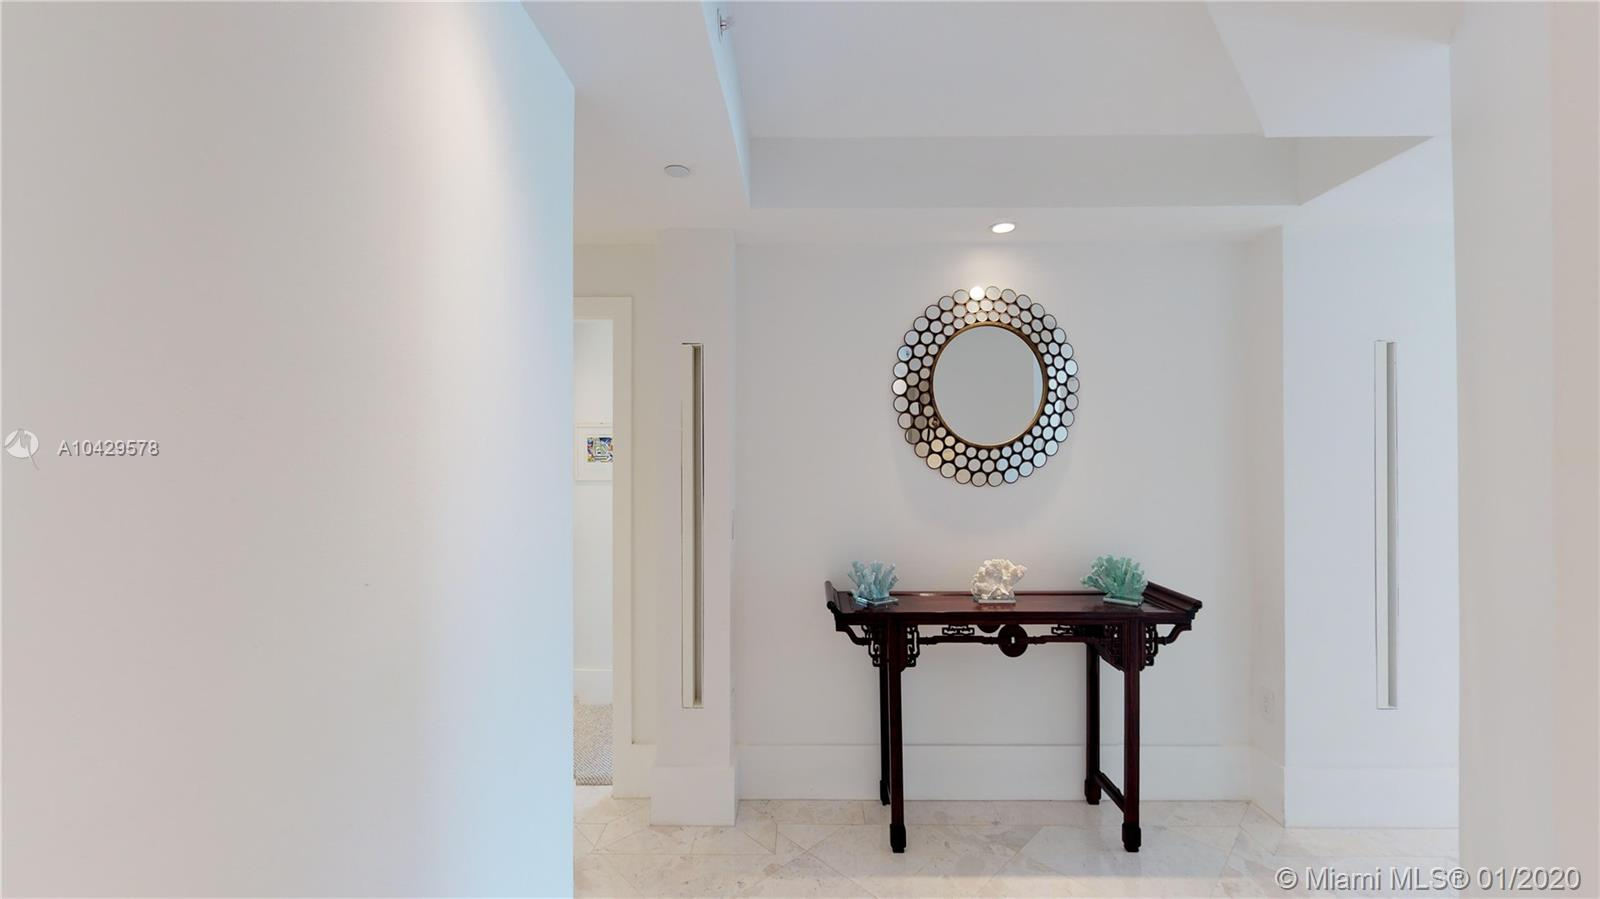 One of Key Biscayne 3 Bedroom Homes for Sale at 251 Crandon Blvd